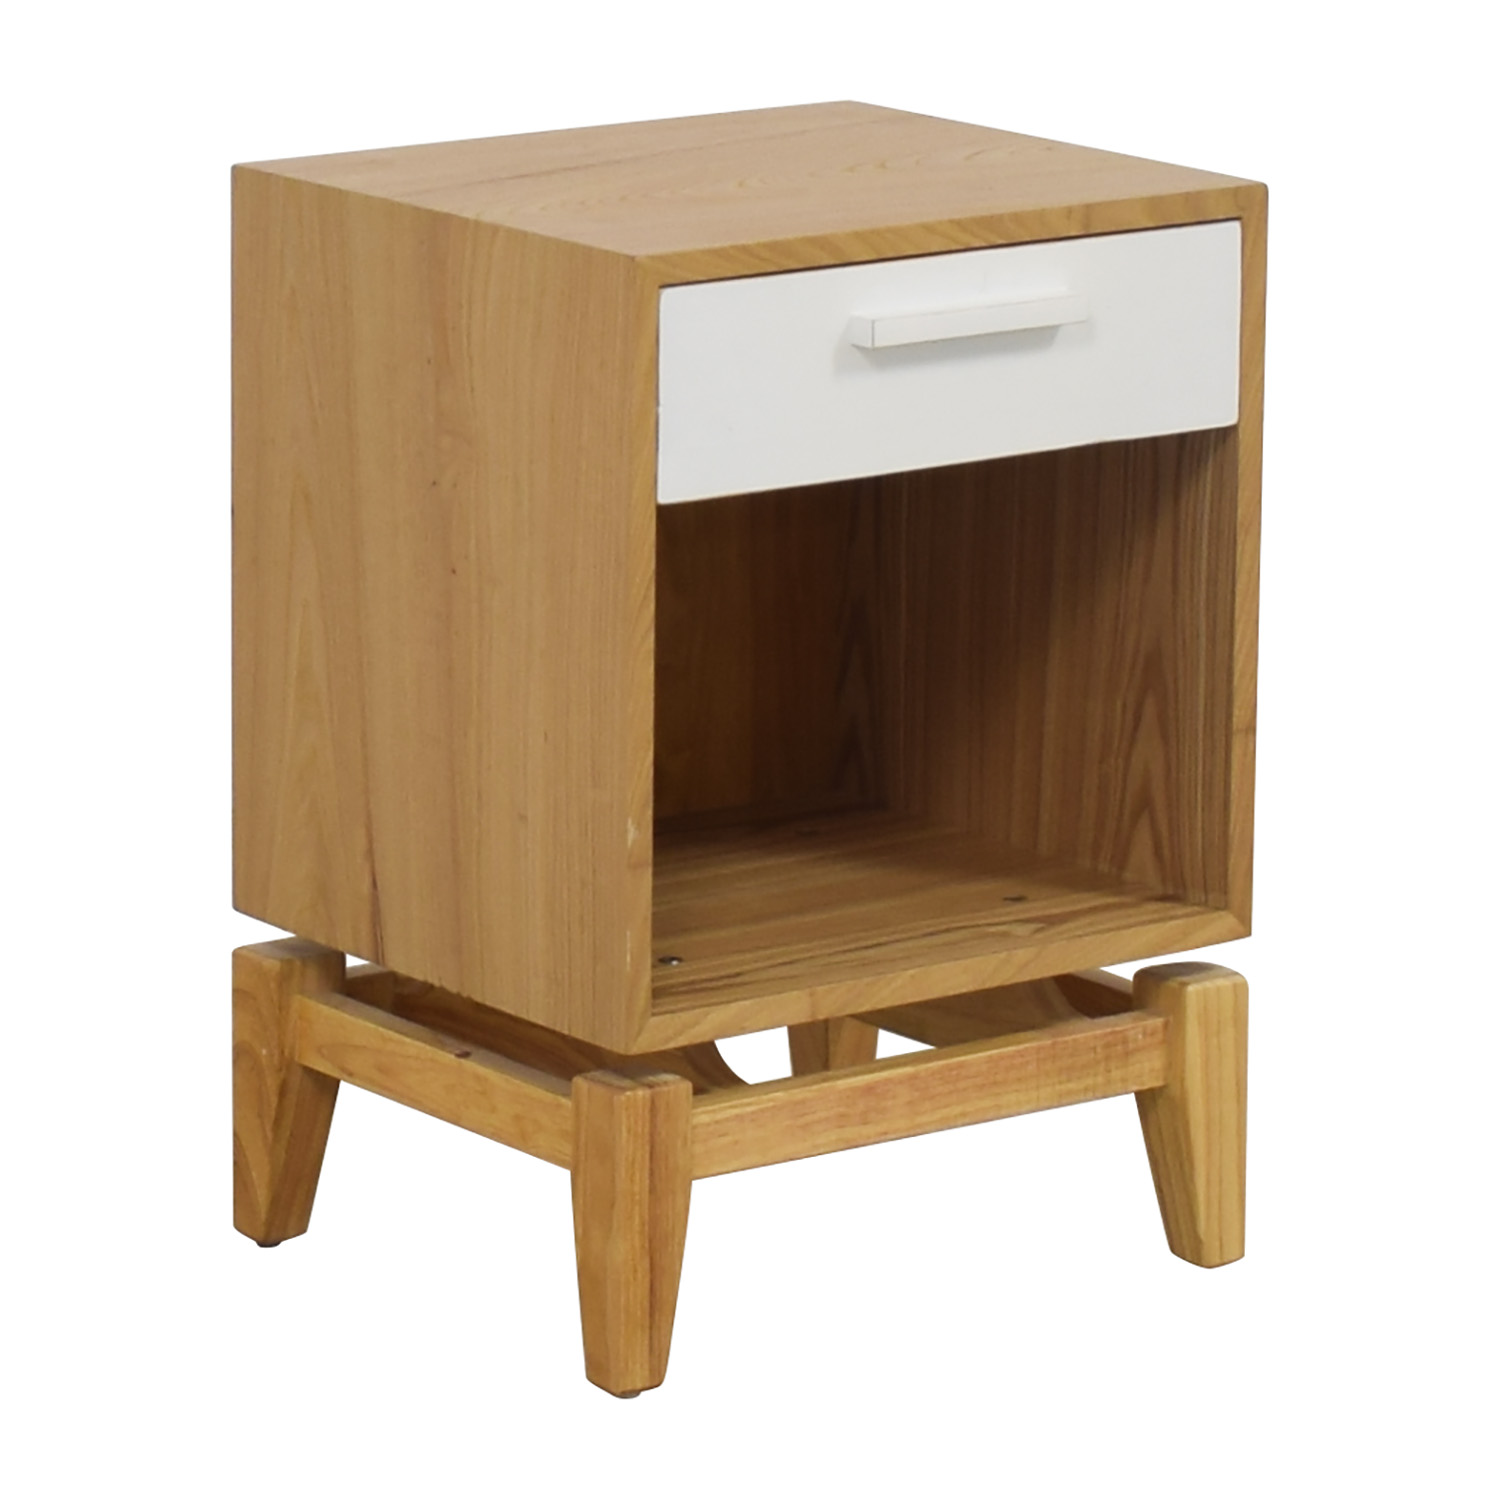 72 off joss main joss main natural and white single drawer end table tables. Black Bedroom Furniture Sets. Home Design Ideas